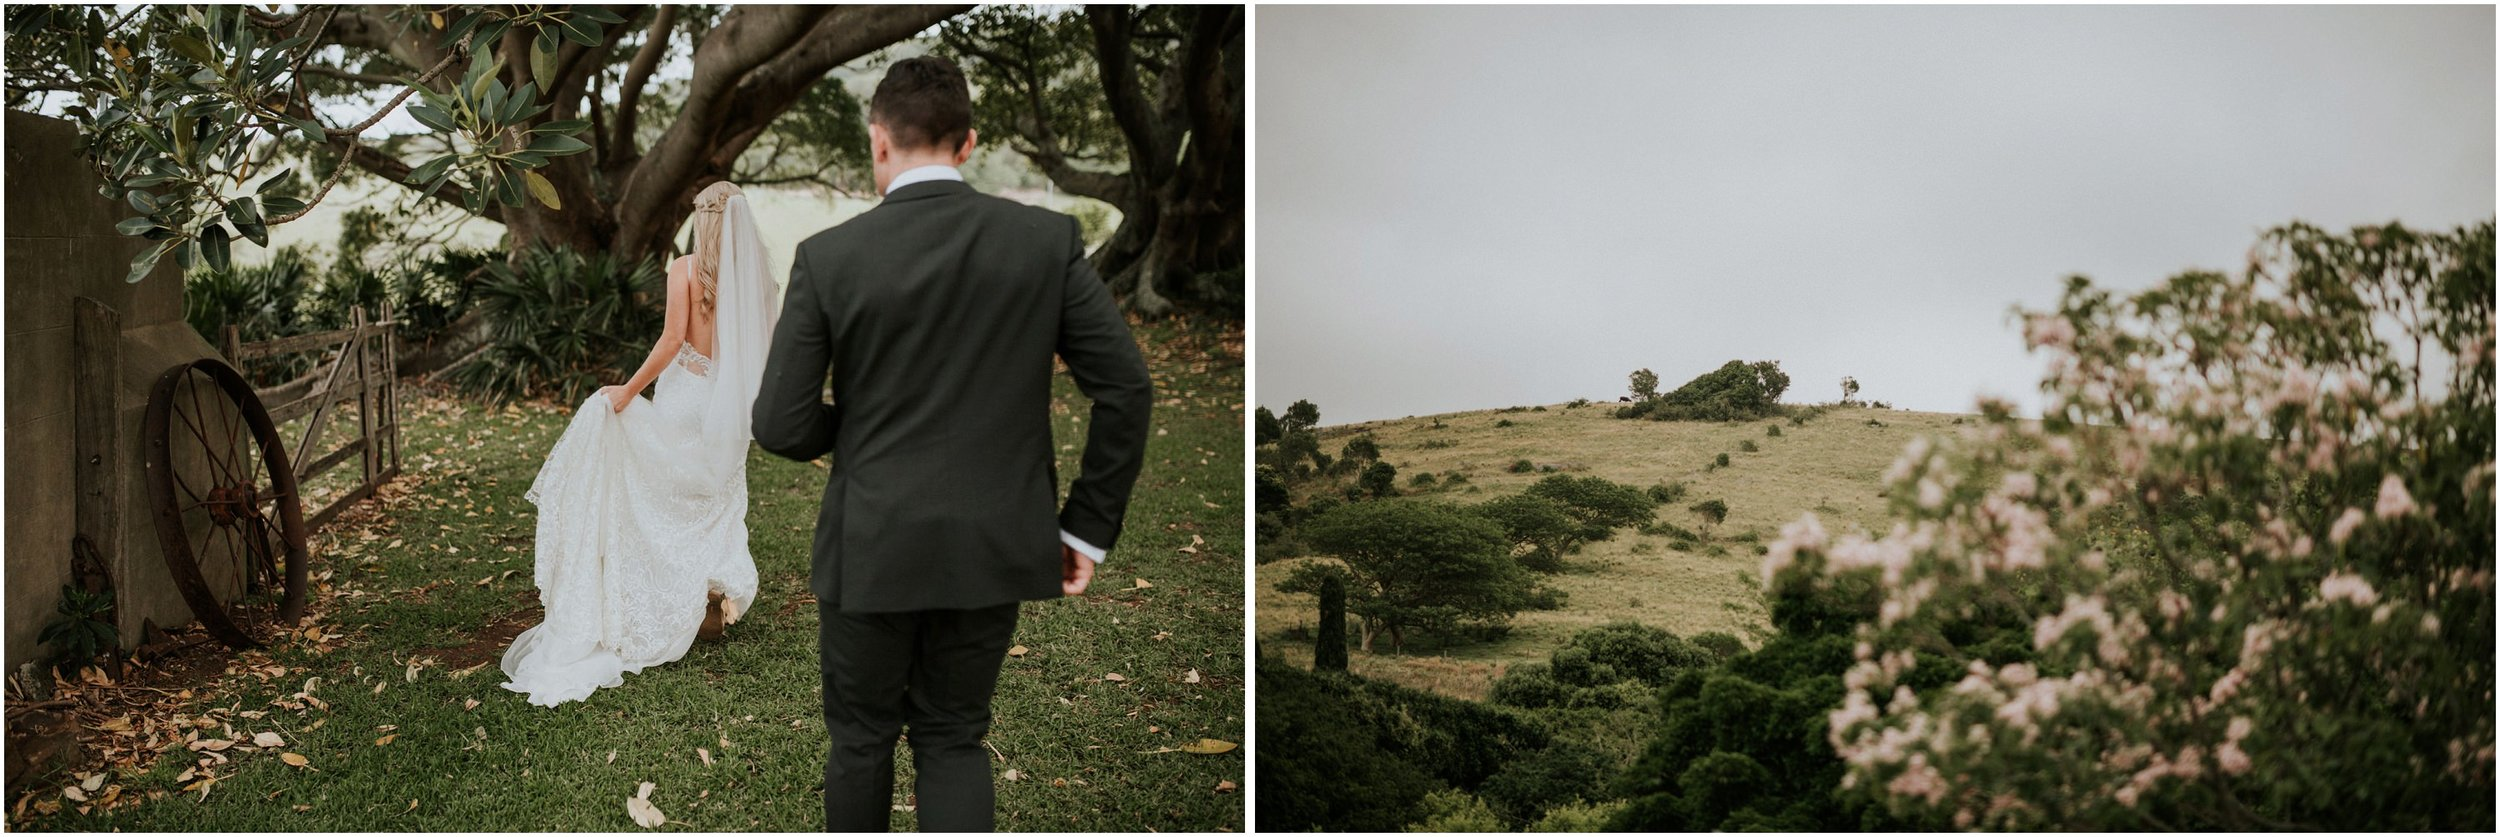 Bushbank Southern Highlands South Coast Wedding Jack Gilchrist Photography Sydney_0335.jpg